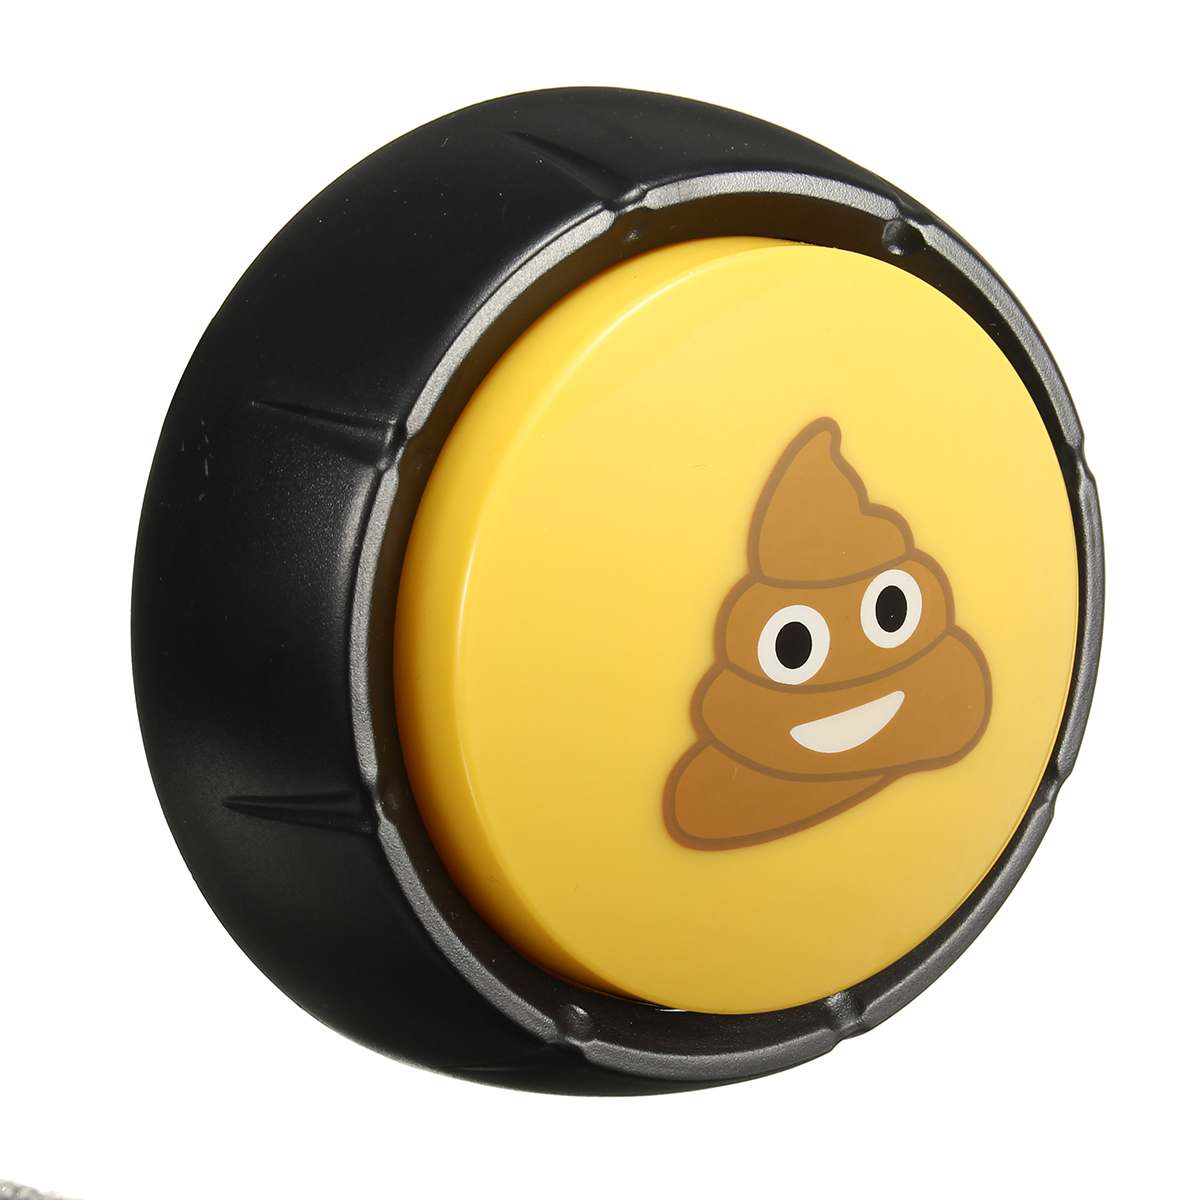 Party Props Button Sound Big Fart Sound Button Joke Funny Desktop Sound Toy Baby Toy For Parents Co-Workers Gag Joke Hot New